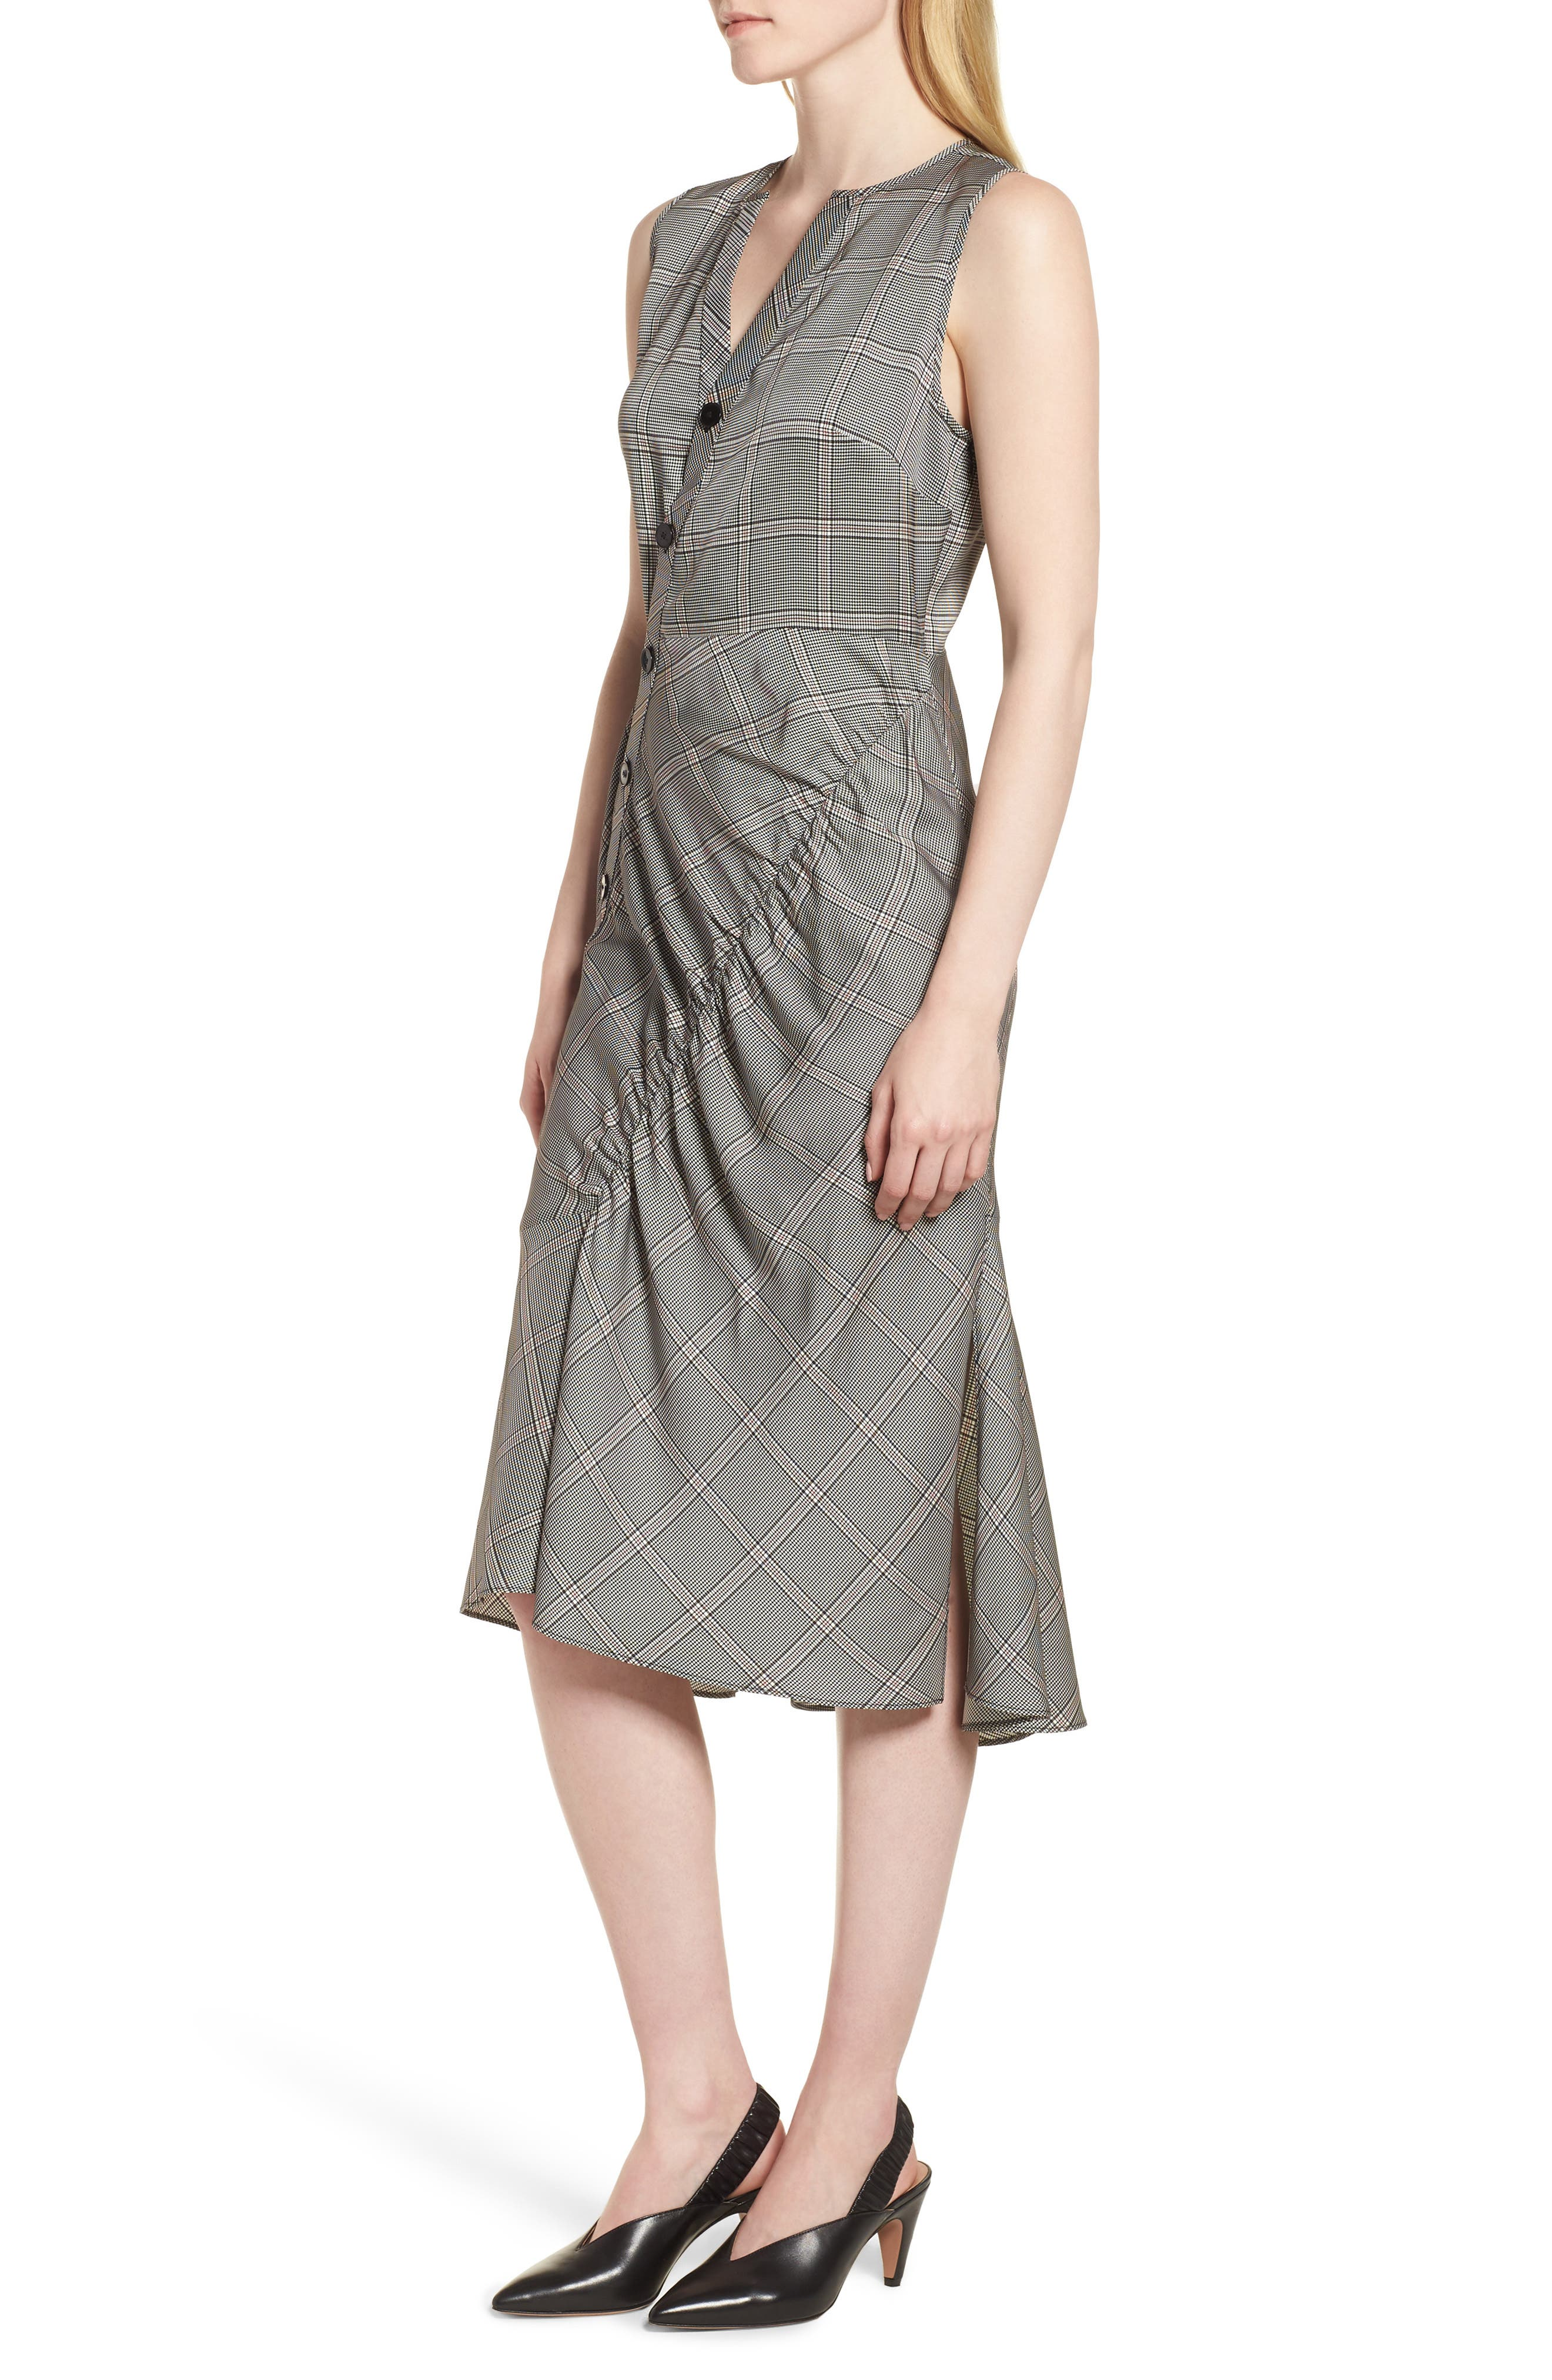 Seam Detail Sleeveless Check Dress,                             Alternate thumbnail 3, color,                             001